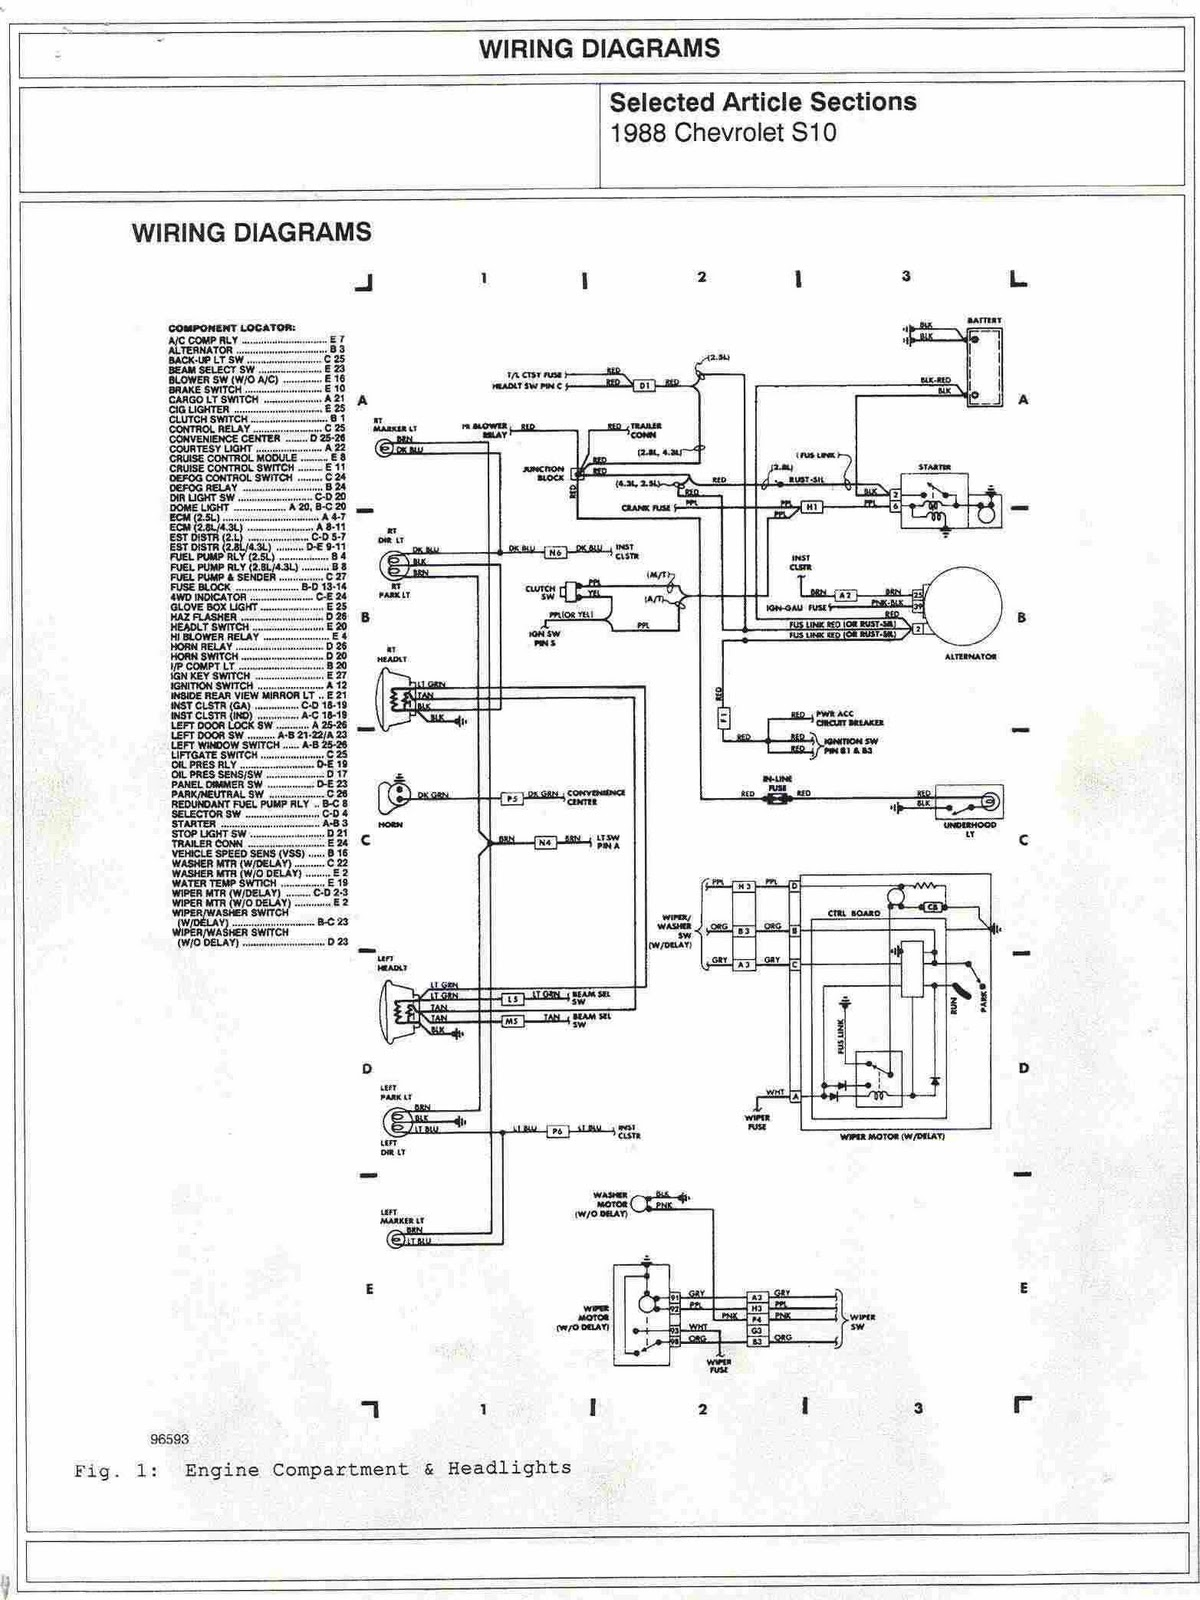 2003 Ezgo Gas Wiring Diagram 1988 Chevrolet S10 Engine Compartment And Headlights